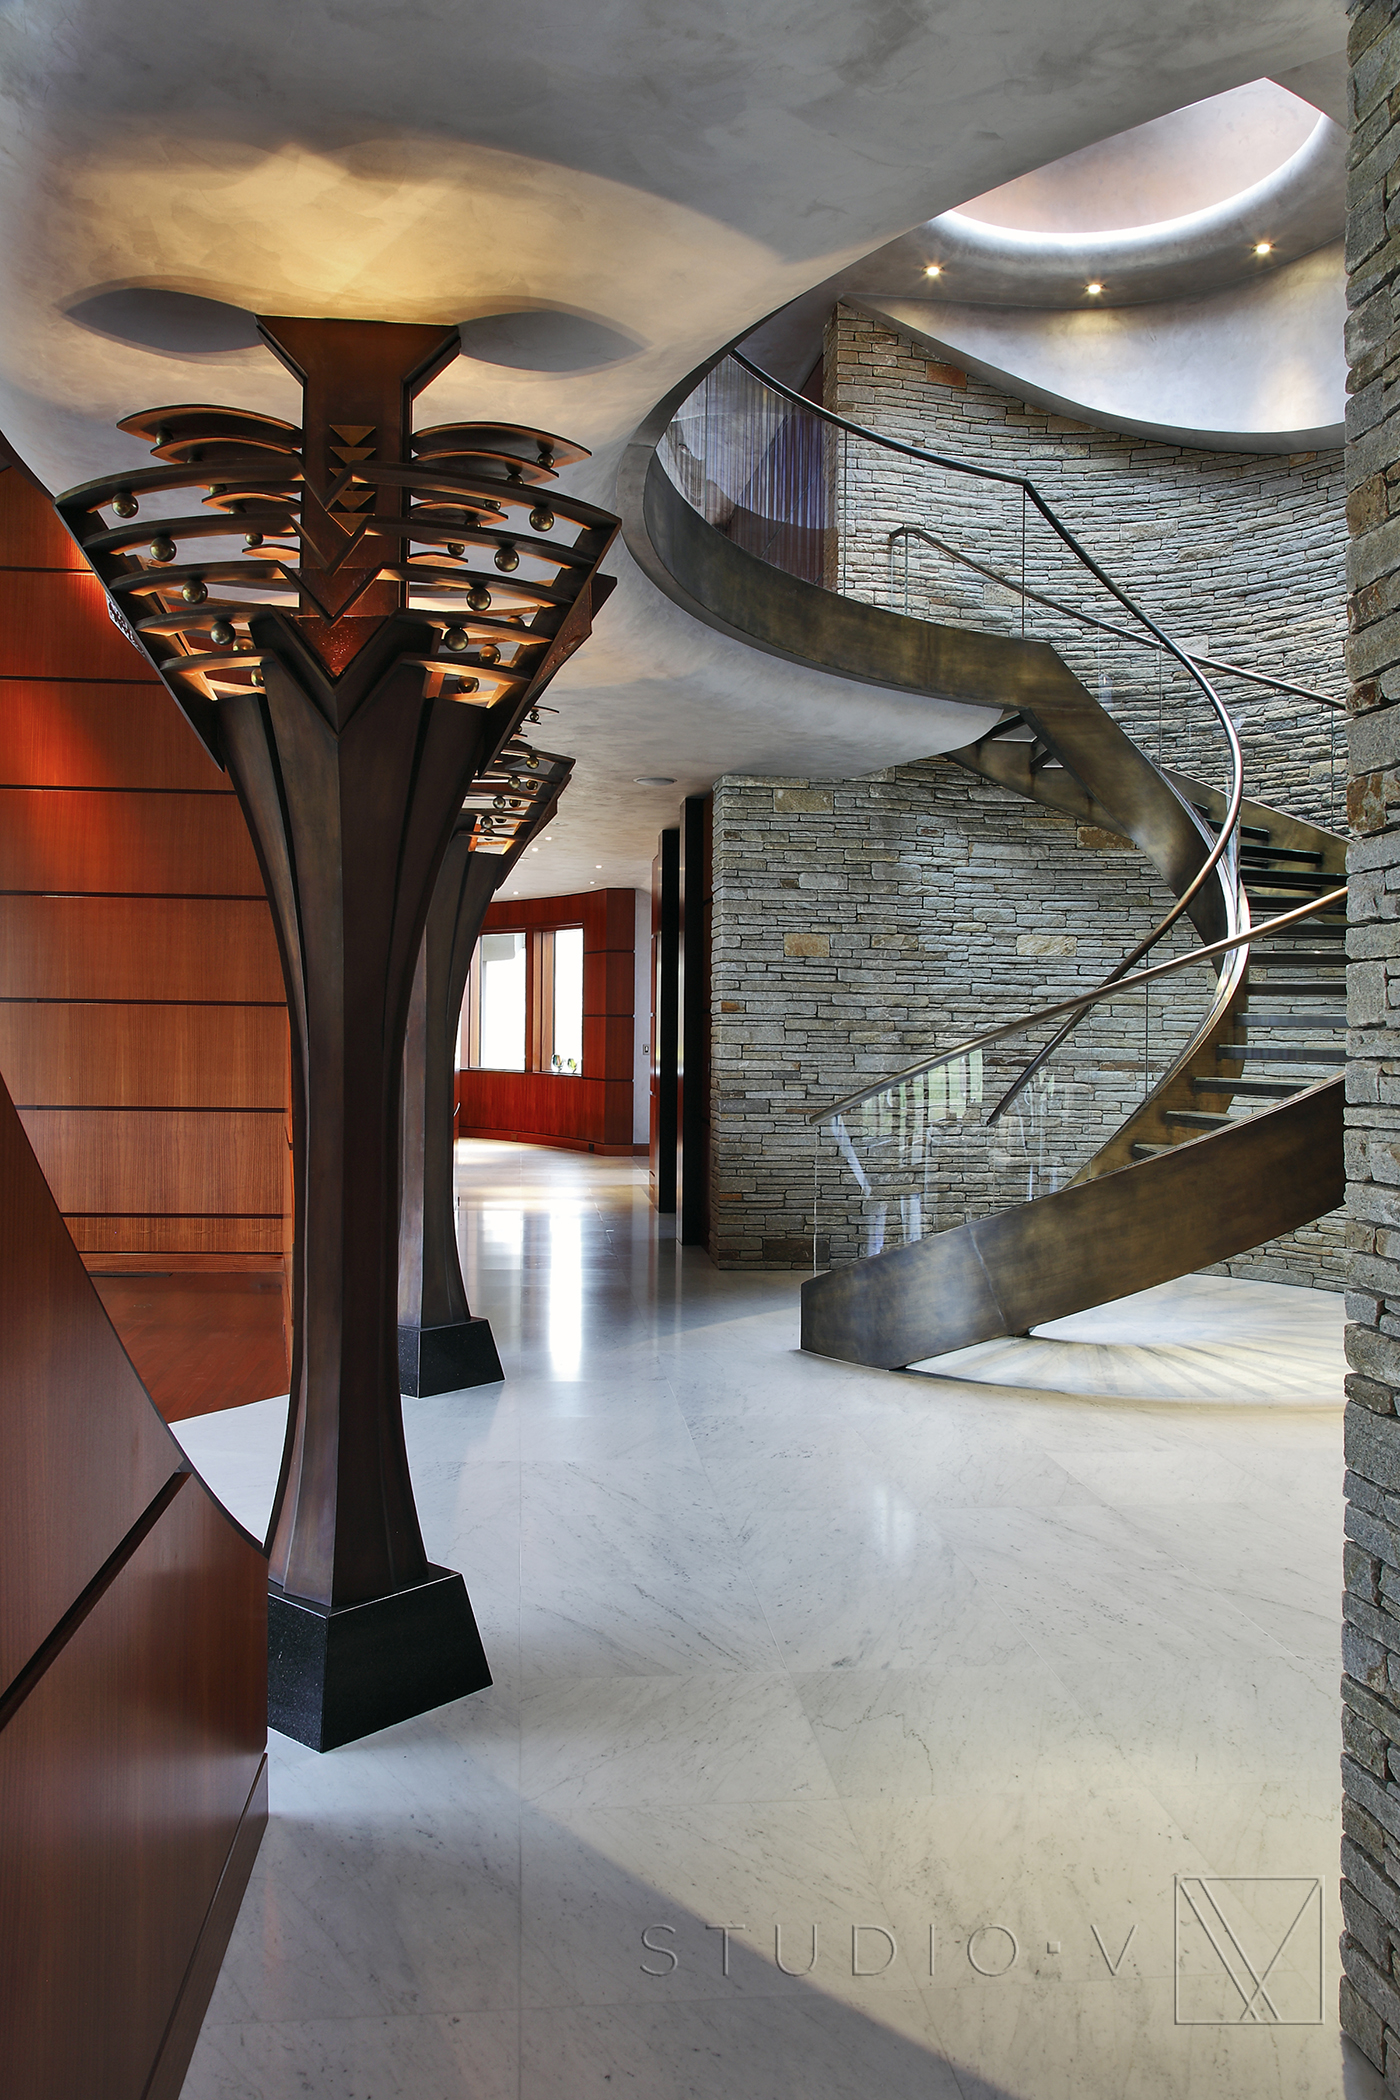 8403 Studio V Interiors Scottsdale AZ Arizona Top Interior Design     02 Foyer Spiral Staircase Studio V Interiors Scottsdale AZ Greenwich CT jpg